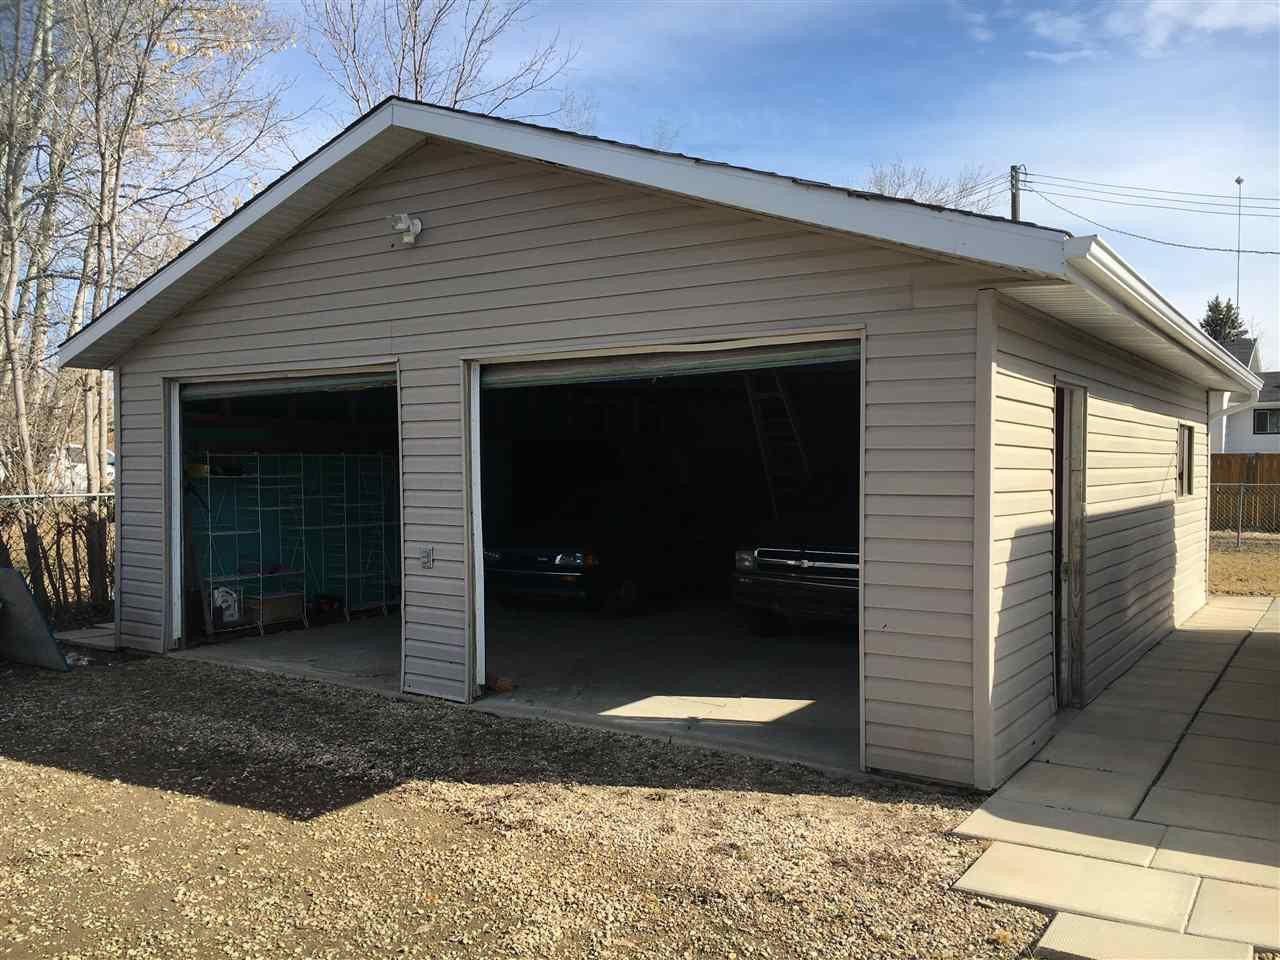 Main Photo: 5131 52 Street: Warburg Vacant Lot for sale : MLS®# E4194826